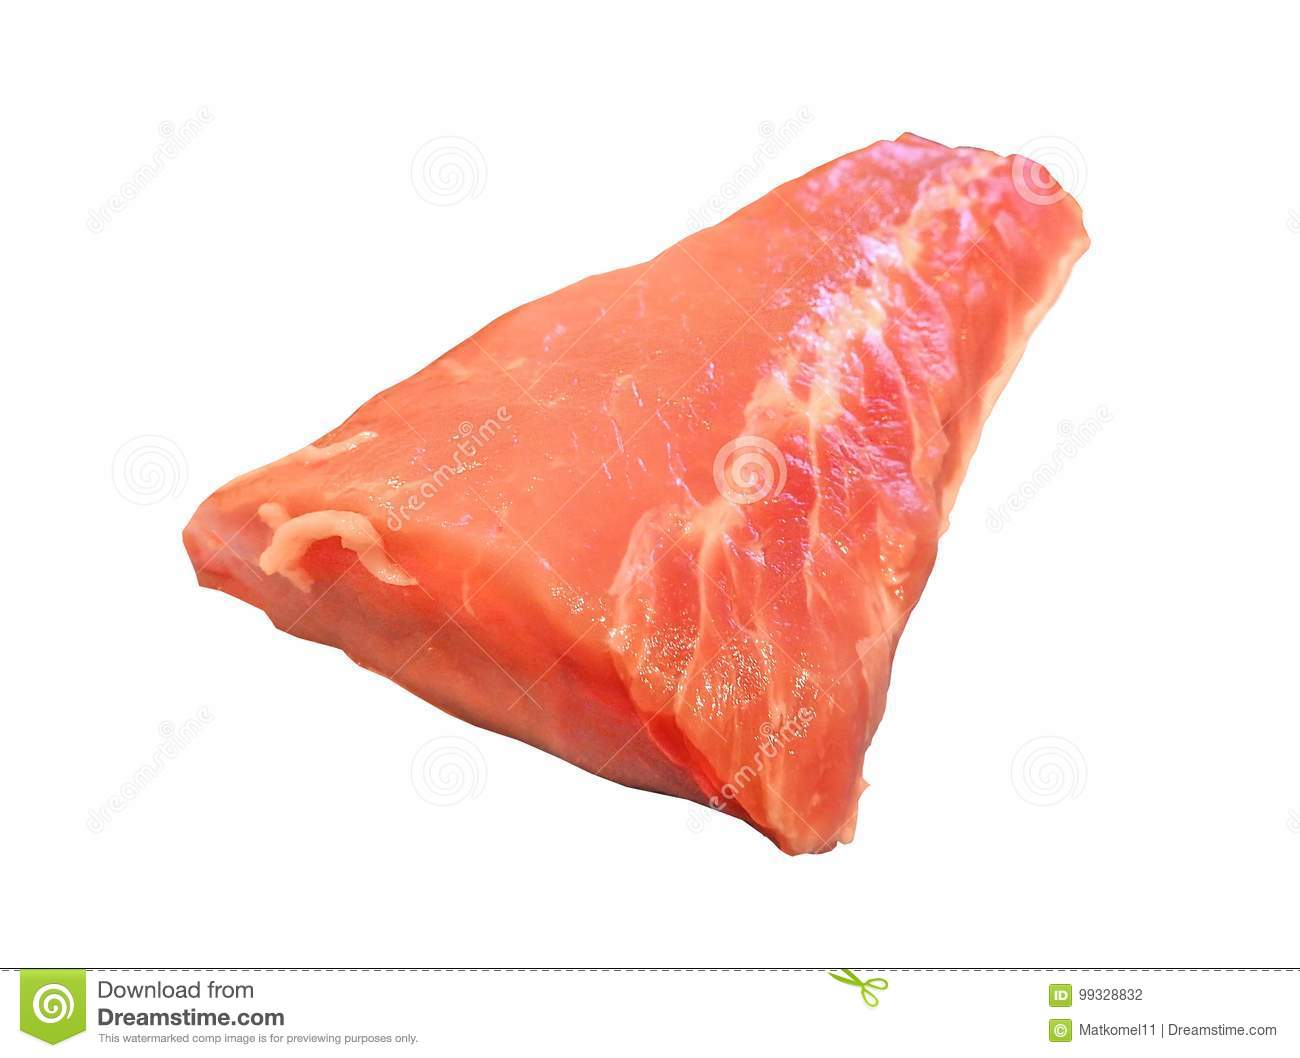 Pork meat on the white background